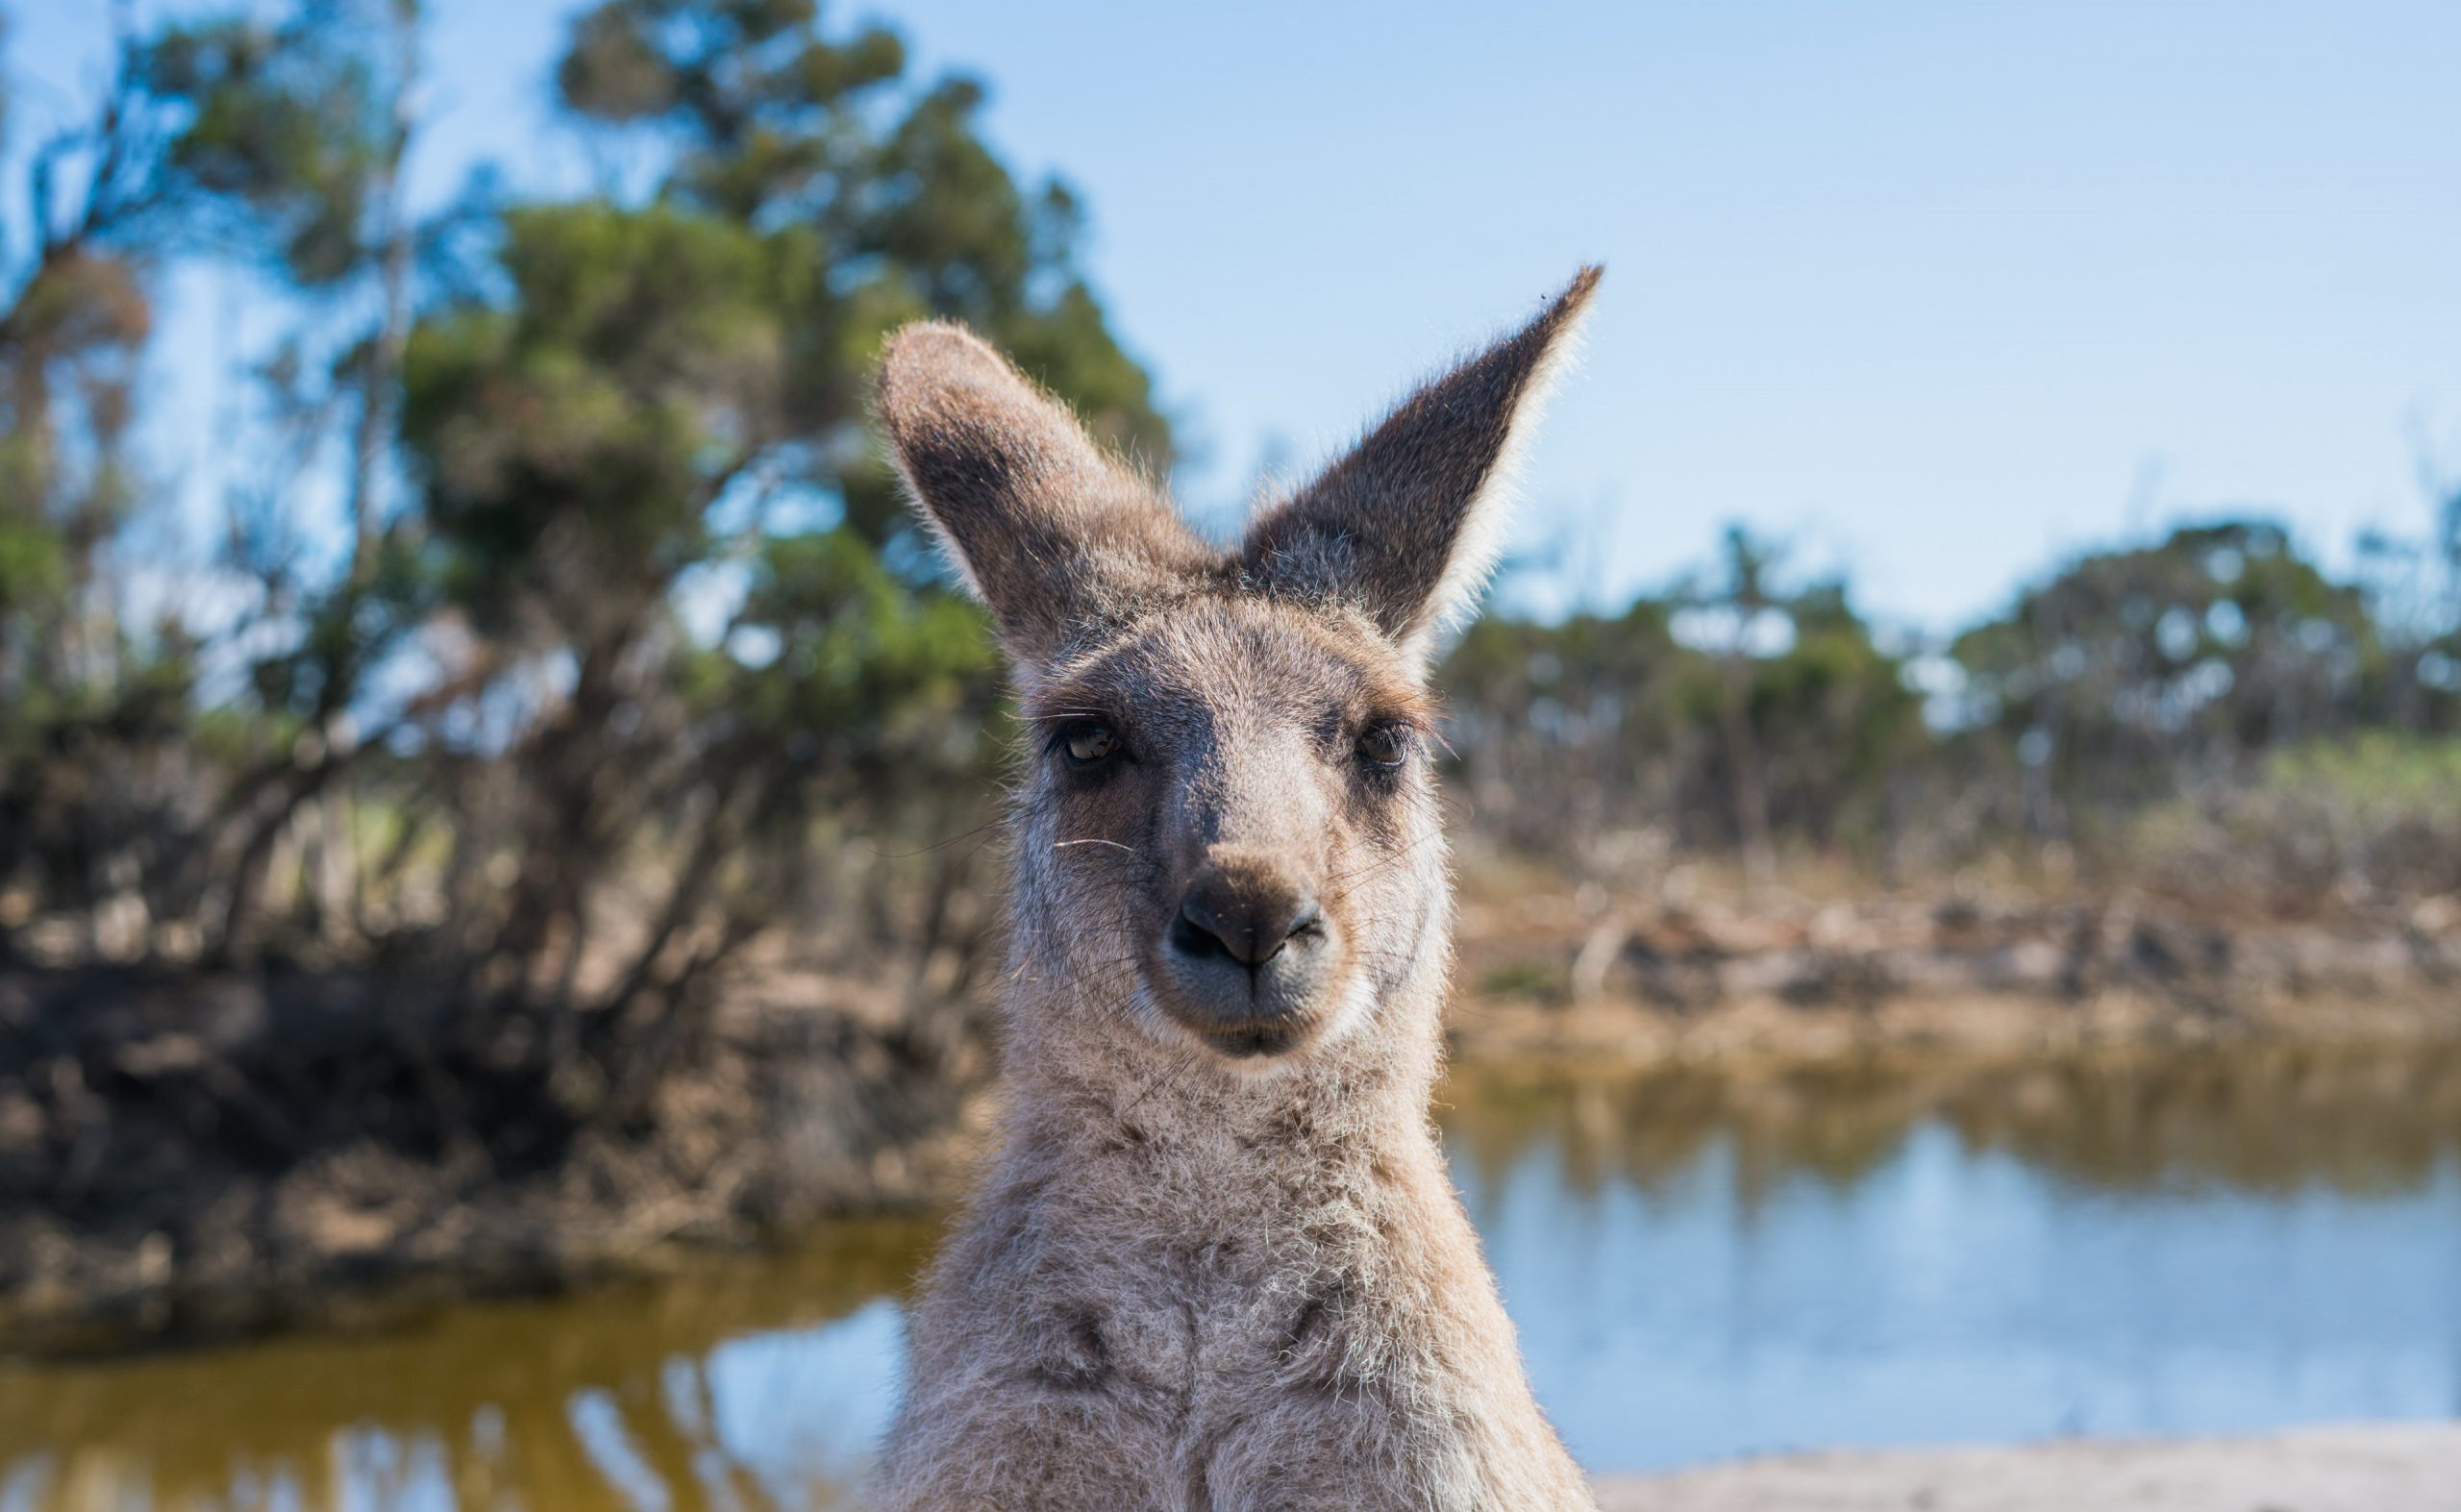 What other animals are there at Kangaroo Island?